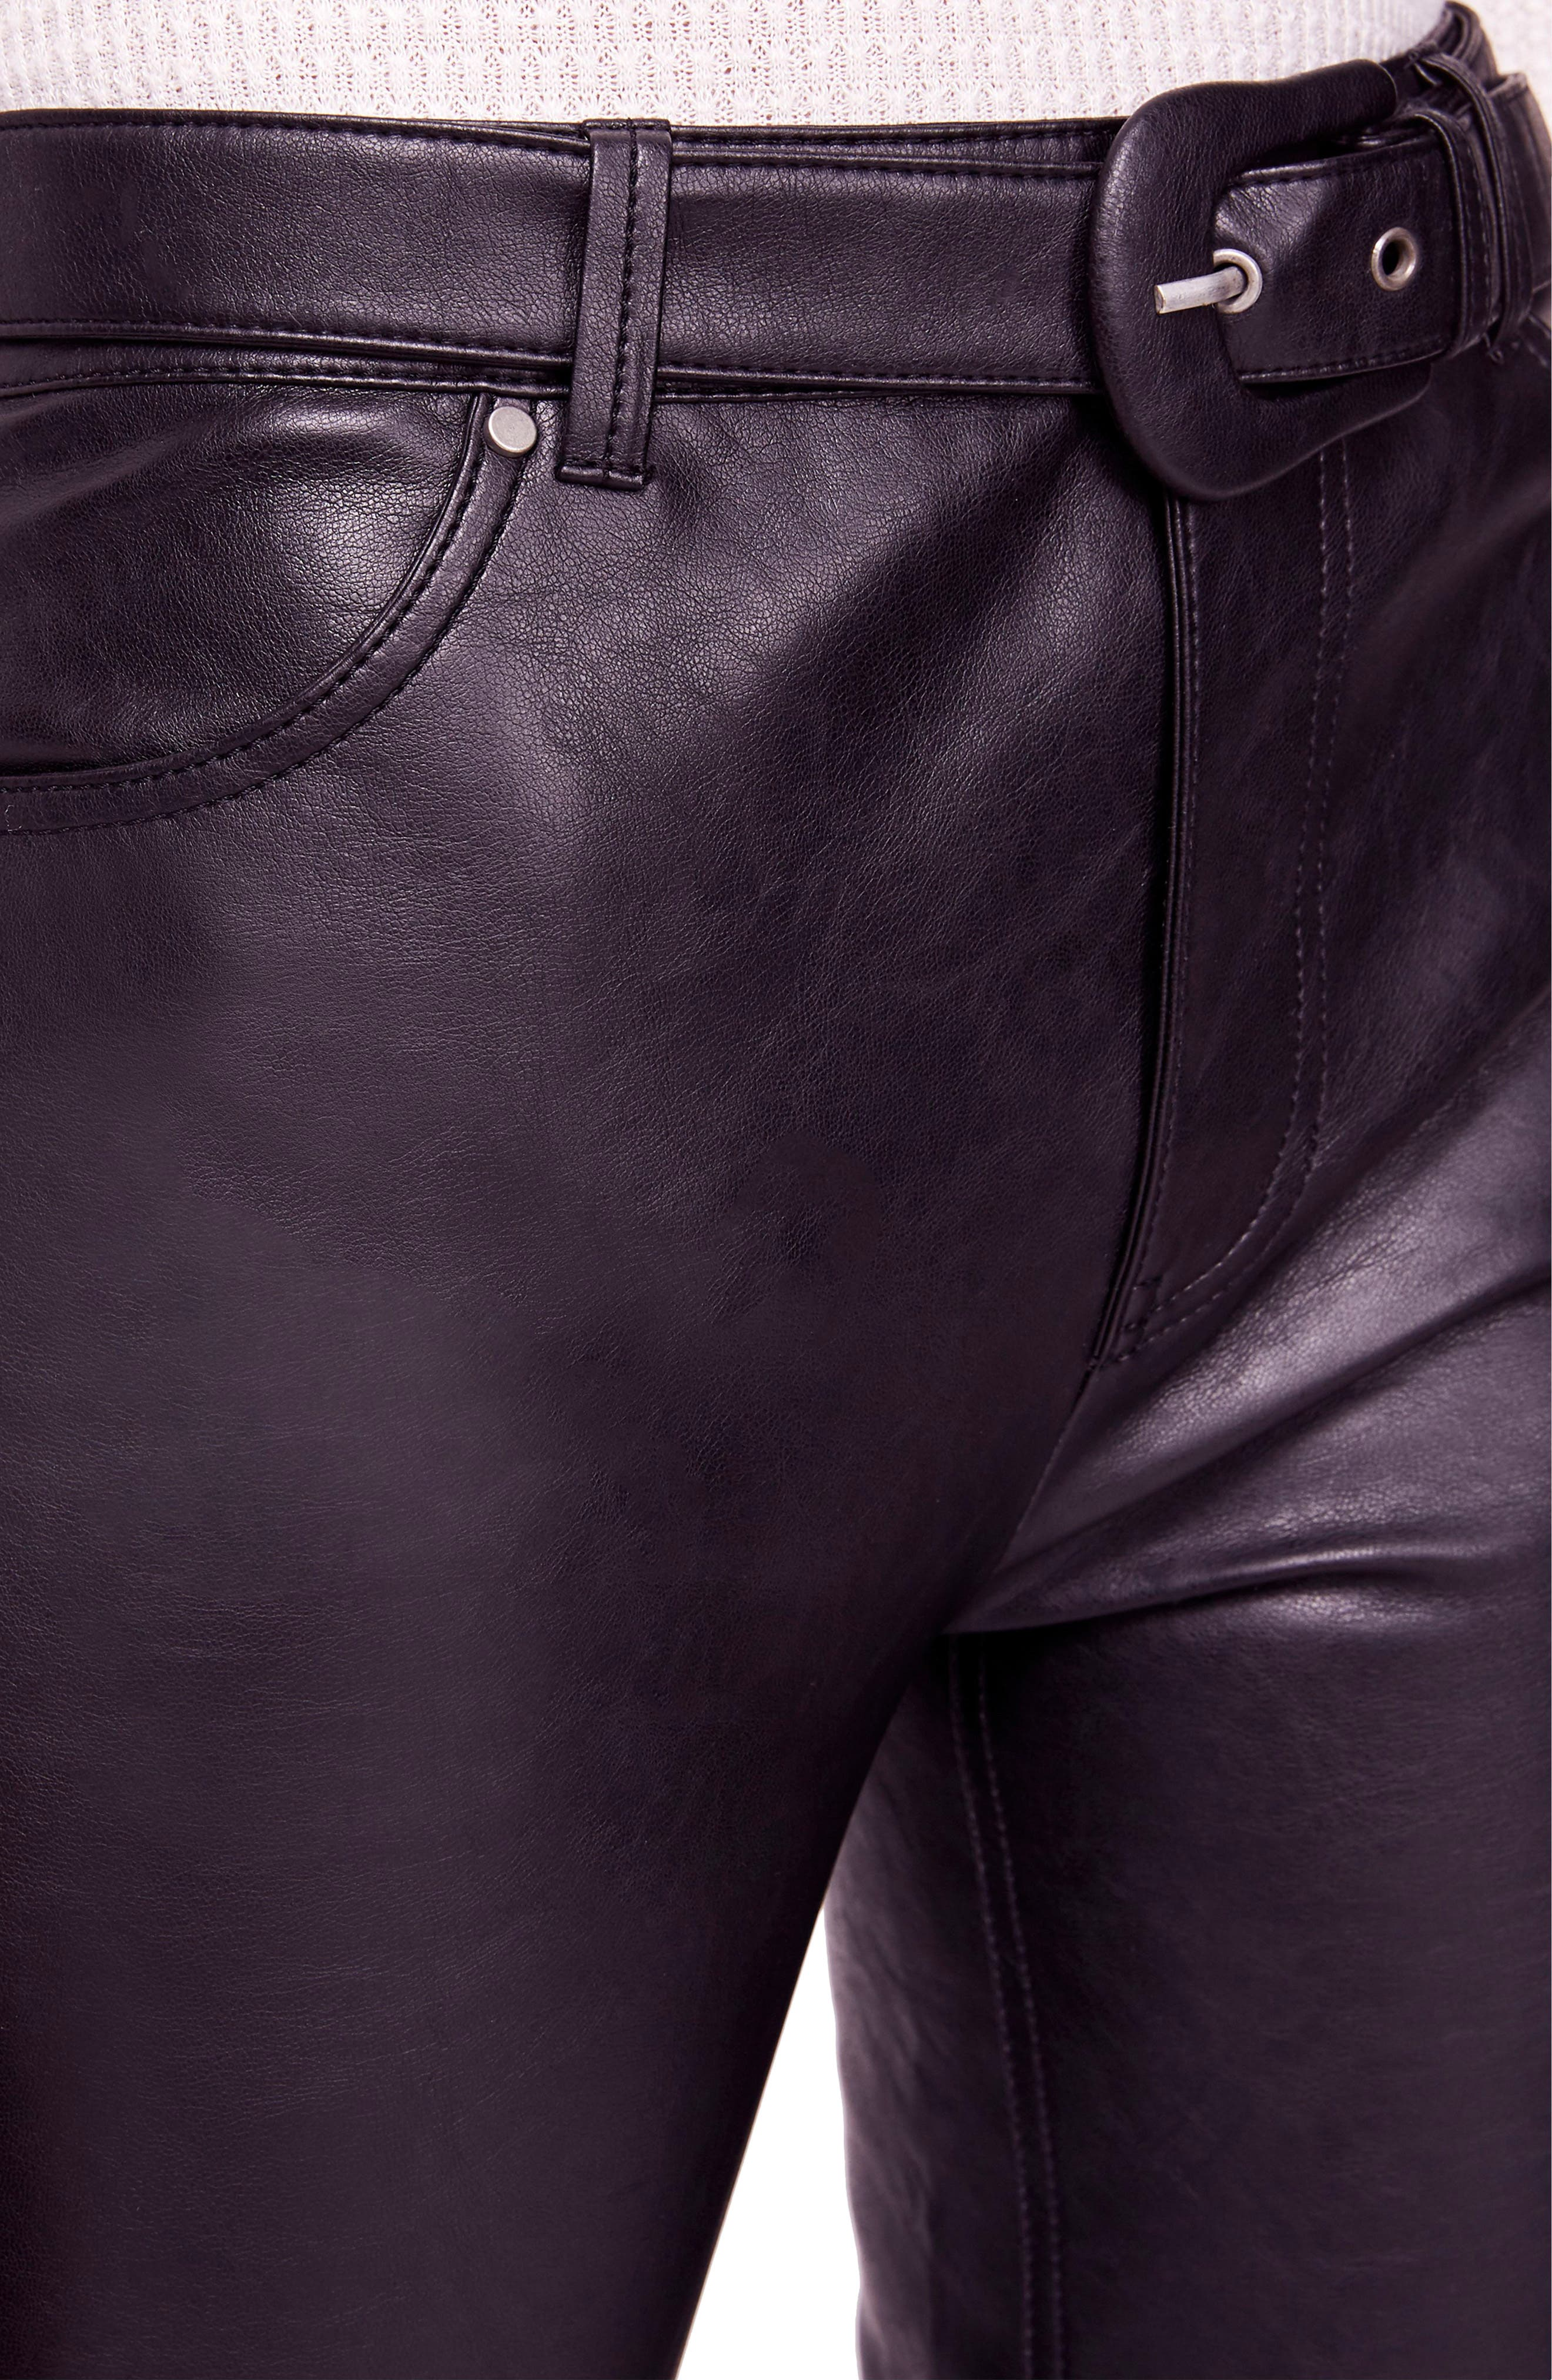 Belted Faux Leather Skinny Pants,                             Alternate thumbnail 4, color,                             001